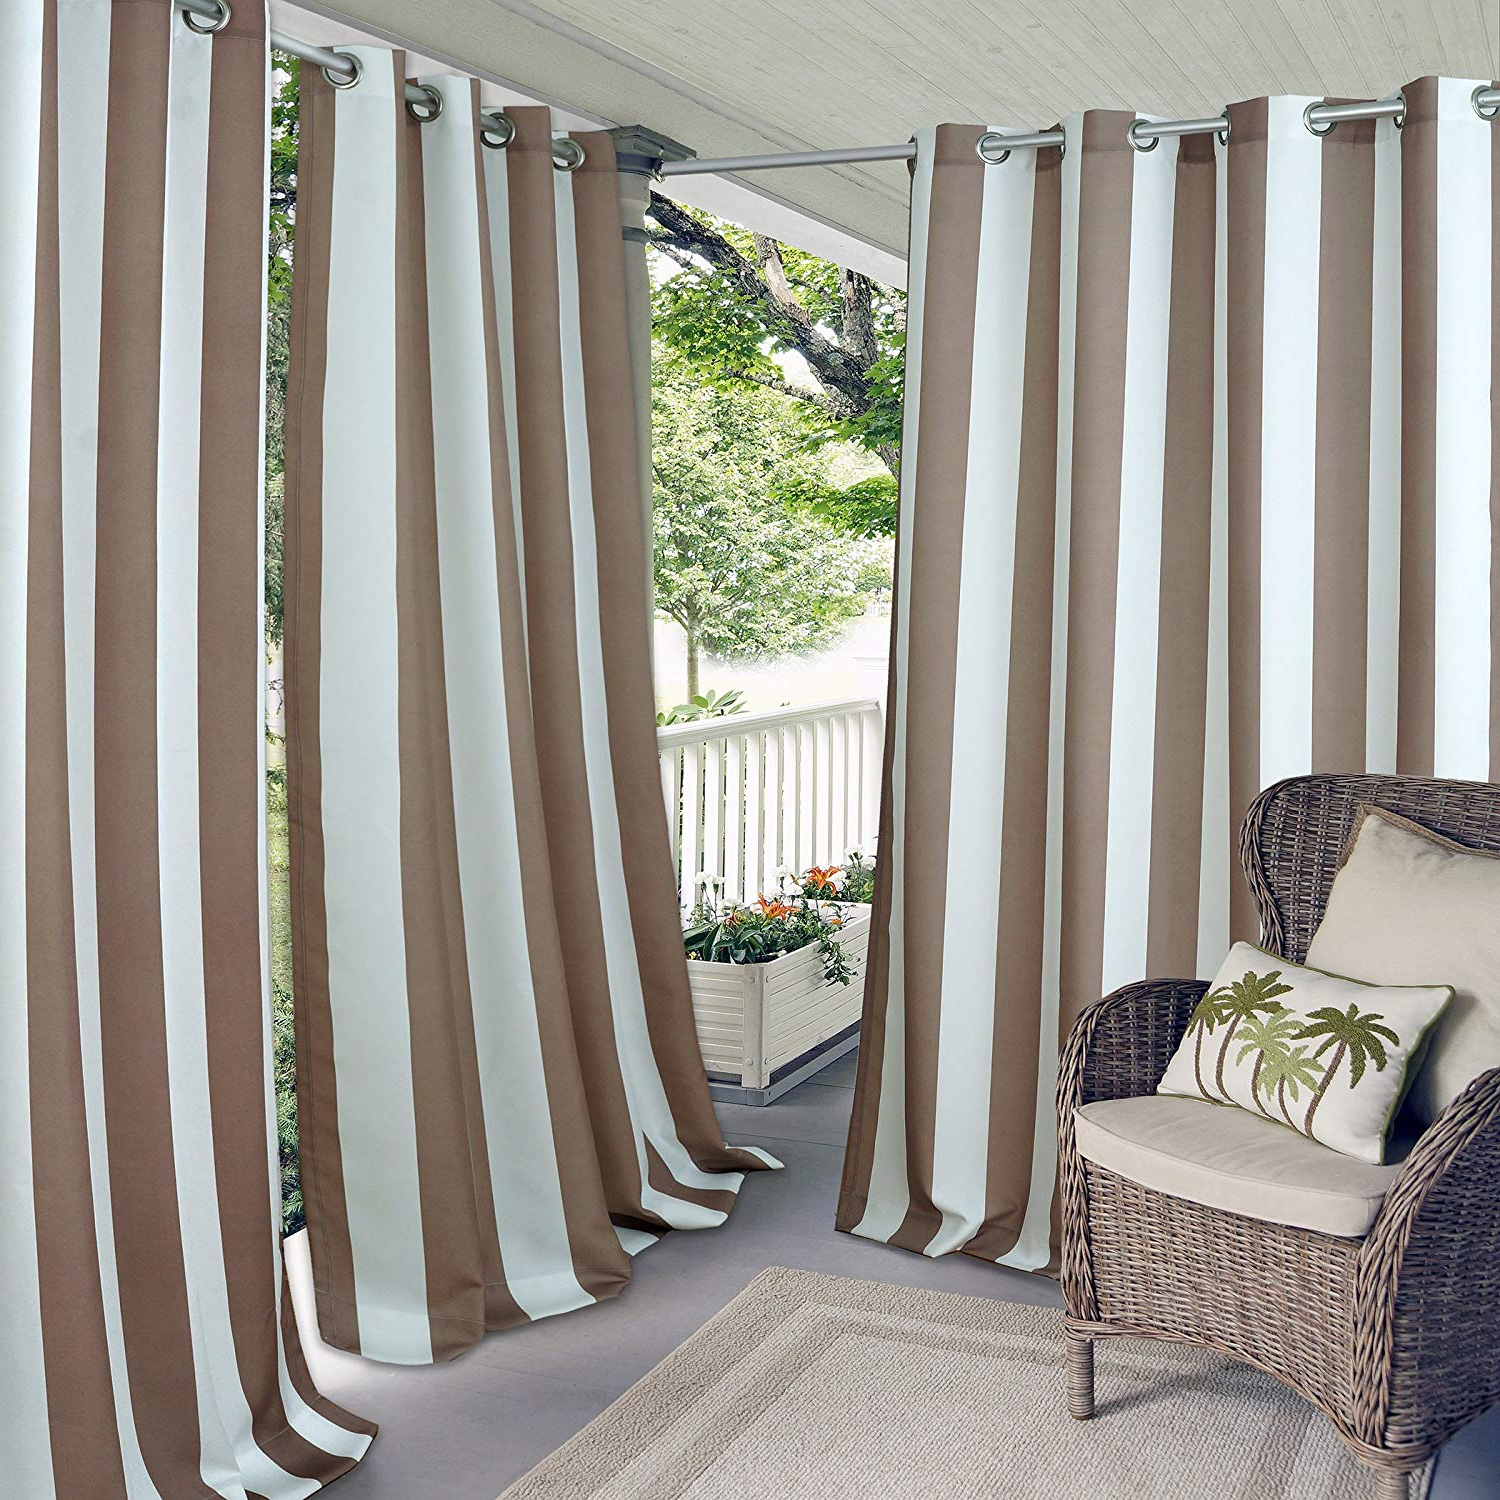 "Most Current Valencia Cabana Stripe Indoor/outdoor Curtain Panels In Elrene Home Fashions Aiden Indoor/outdoor Cabana Stripe Grommet Top Single Panel Window Curtain Drape, 50"" X 108"" (1), Natural (View 13 of 20)"